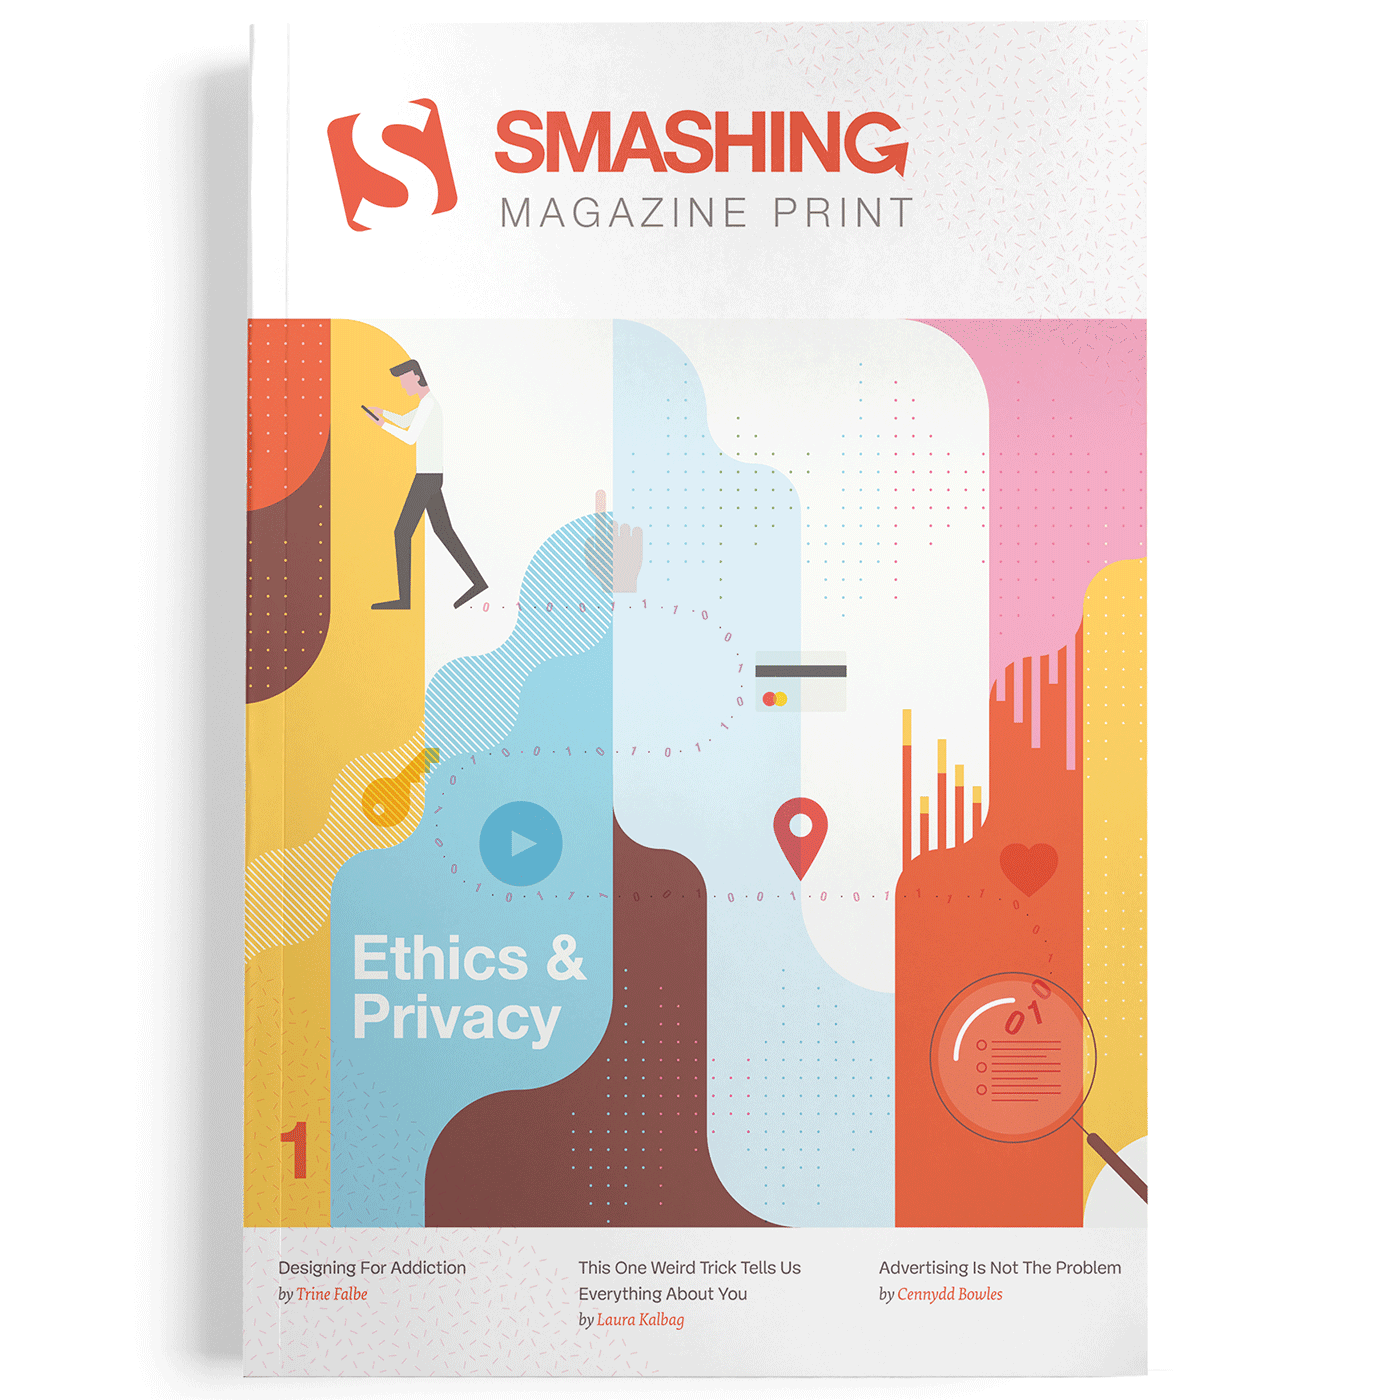 A mockup of the final Smashing Magazine Print cover design (in front view)